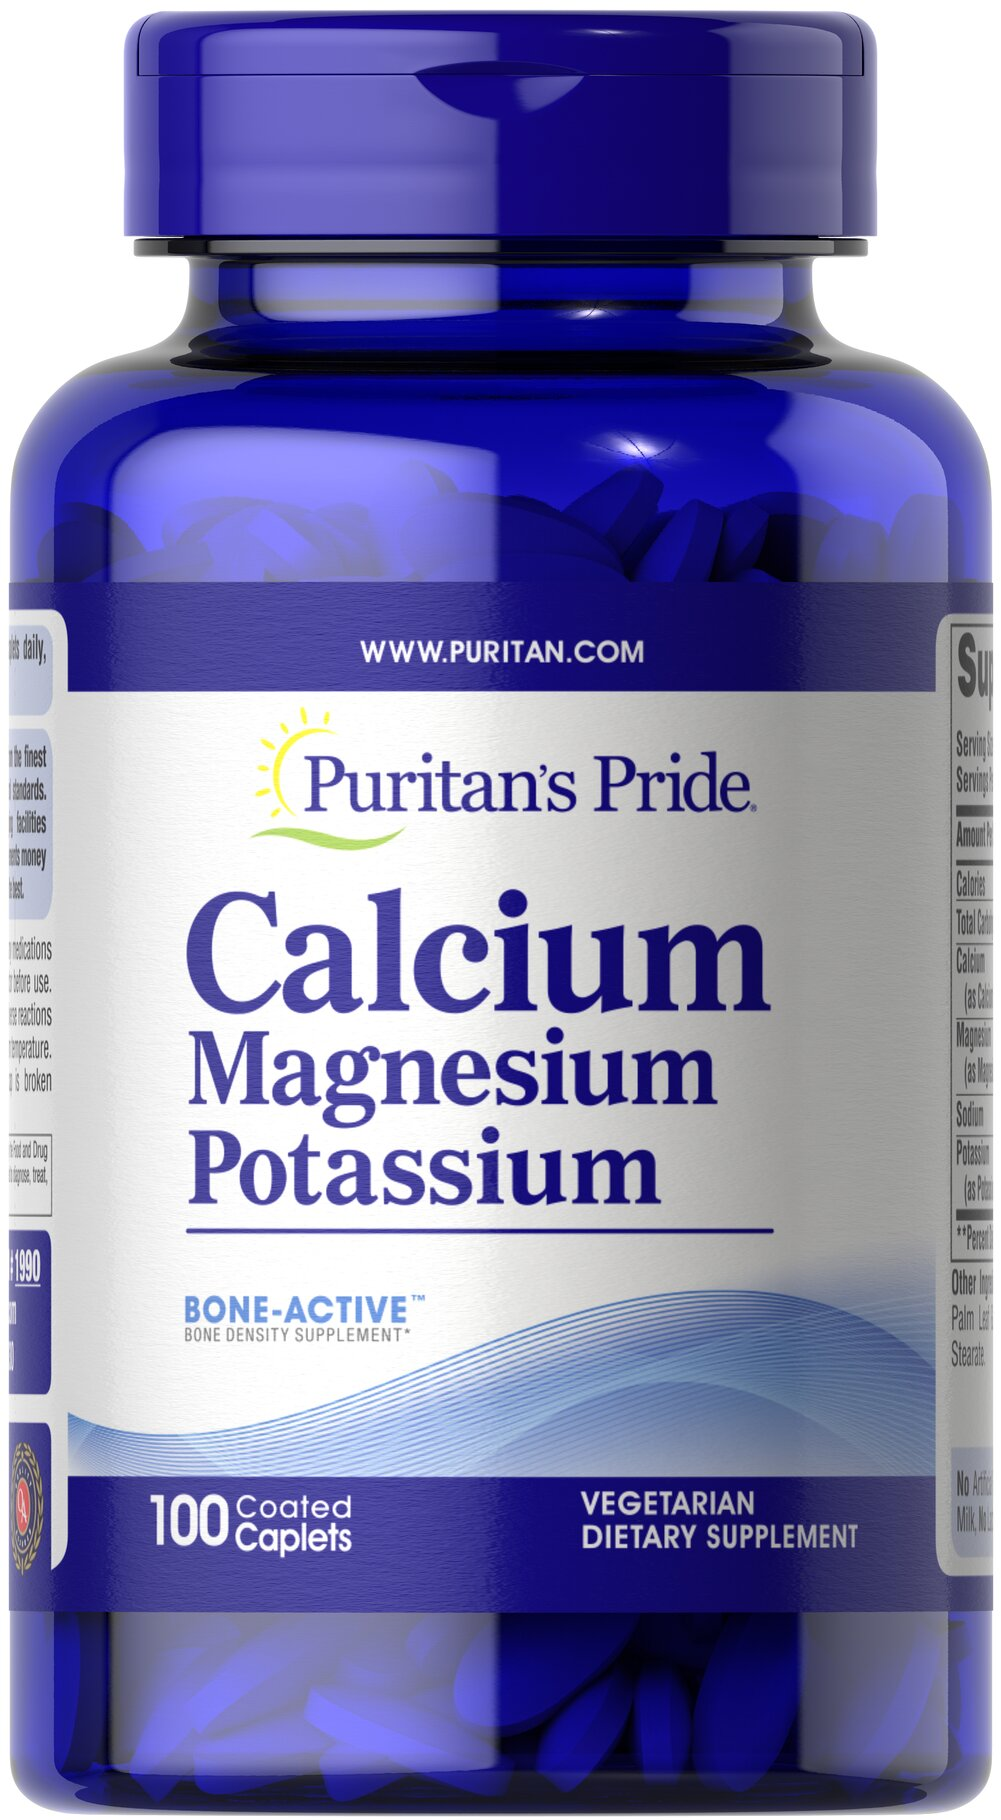 Calcium Magnesium Potassium <p>Cal/Mag/Potassium tablets contain three important minerals (calcium, magnesium, and potassium) that work together synergistically for better absorption and bioavailability.</p><p><strong>Two (2) tablets contain 500 mg Calcium, 500 mg Magnesium and 99 mg Potassium.</strong></p> 100 Caplets 250 mg/49 mg $10.29